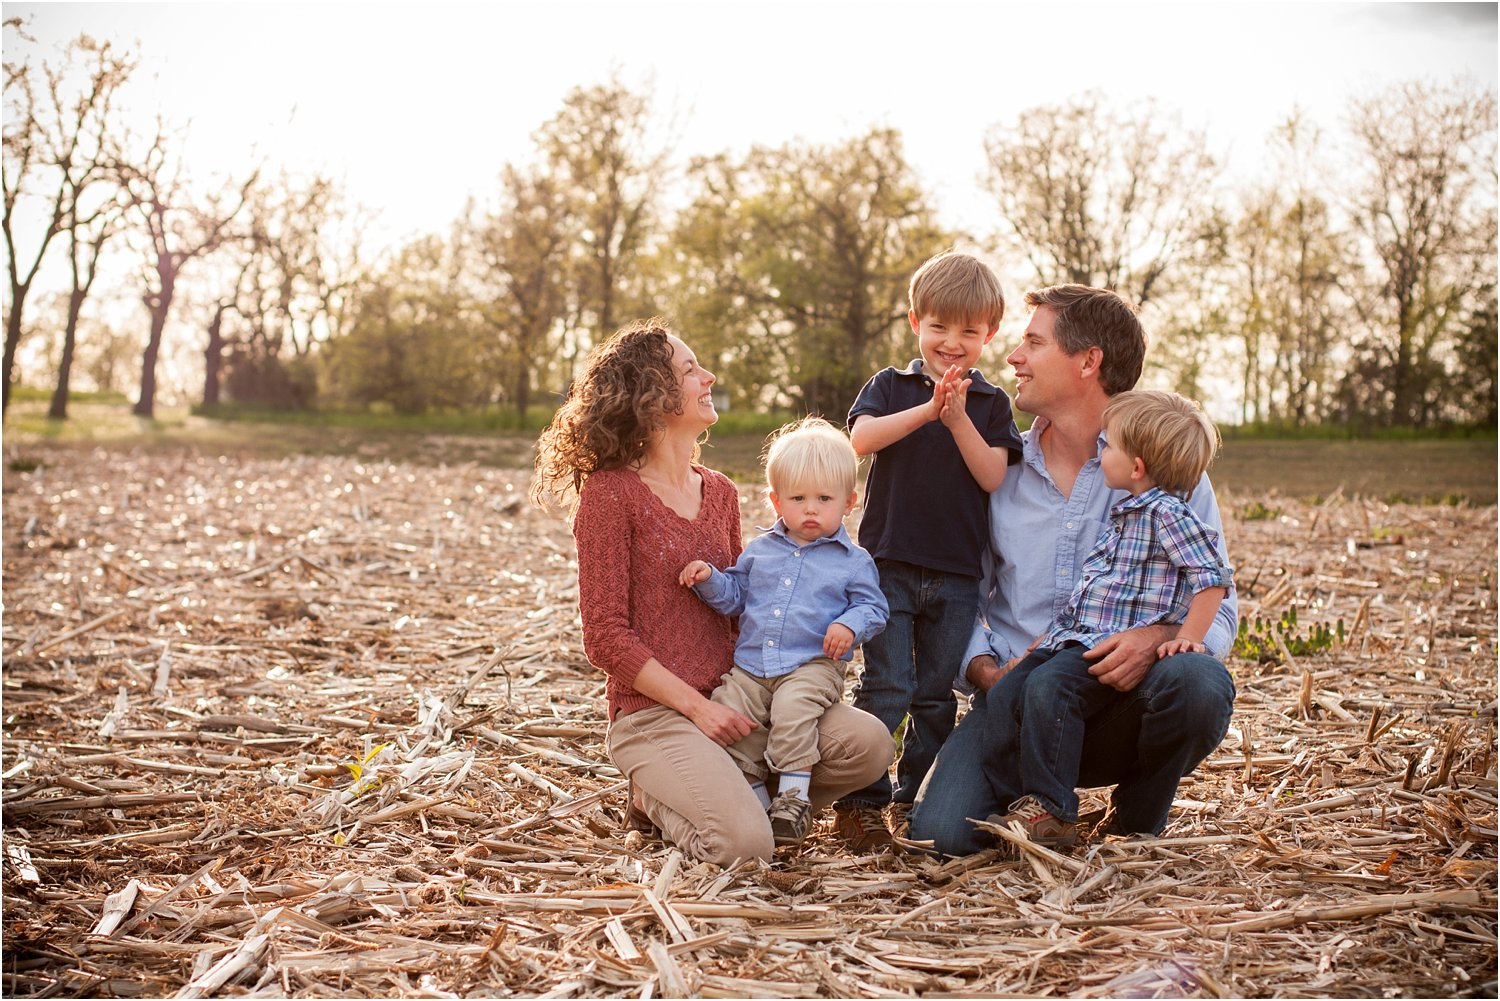 Harrisonburg_Family_Portraits_Nelsons_0003.jpg